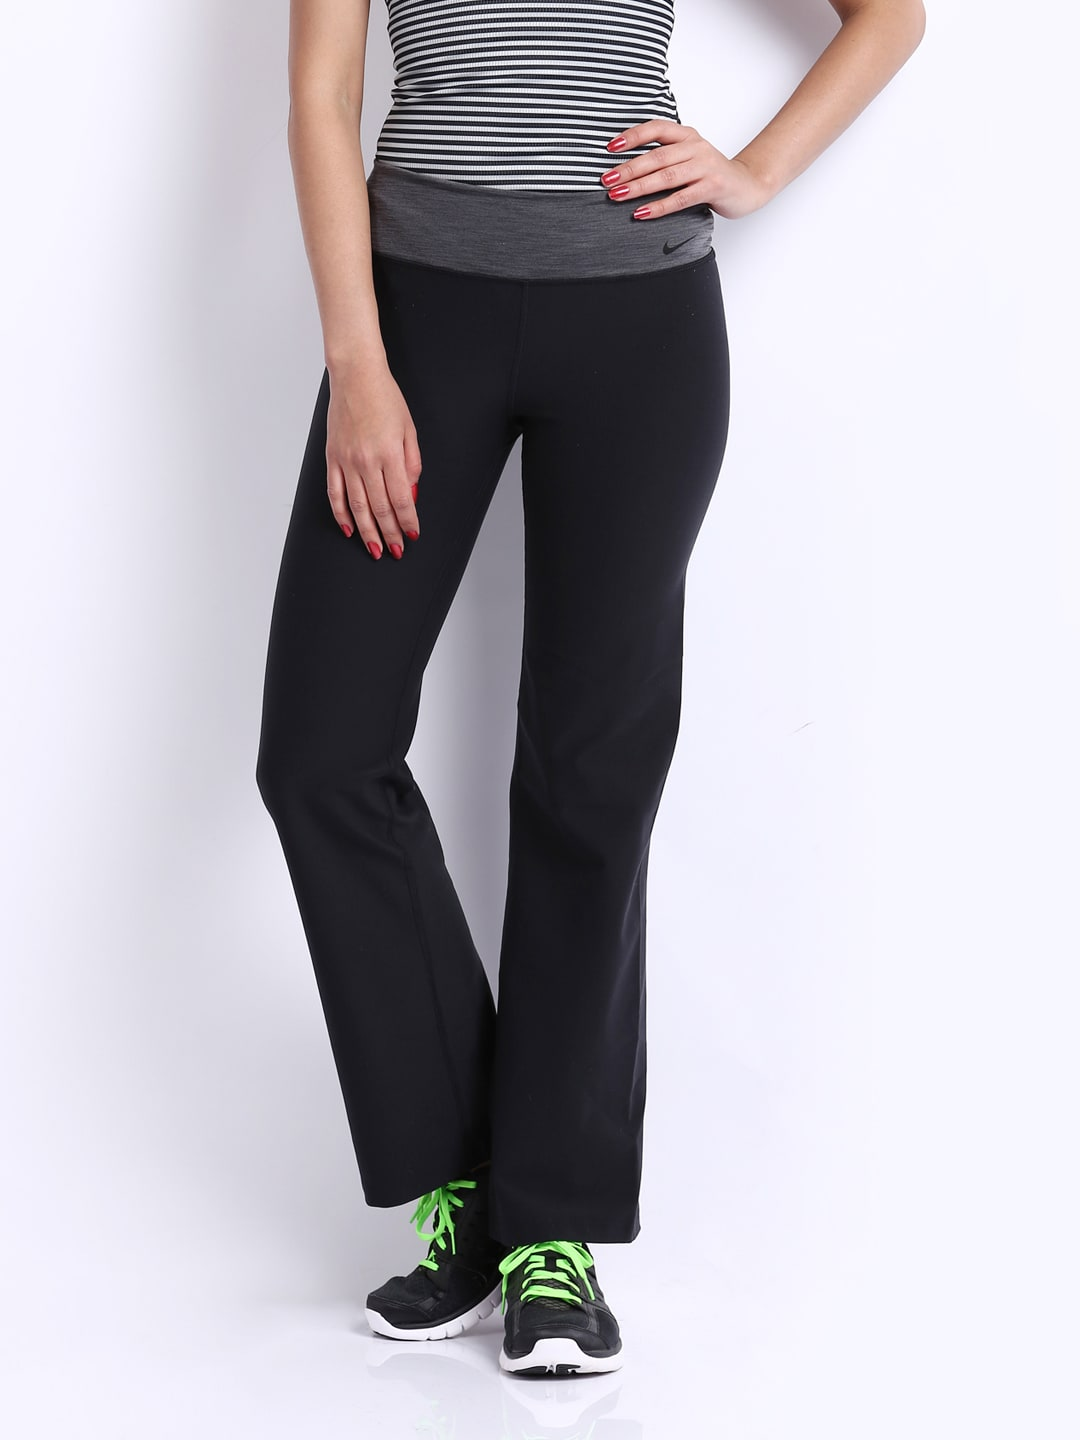 Elegant Home Clothing Women Clothing Track Pants Nike Track Pants